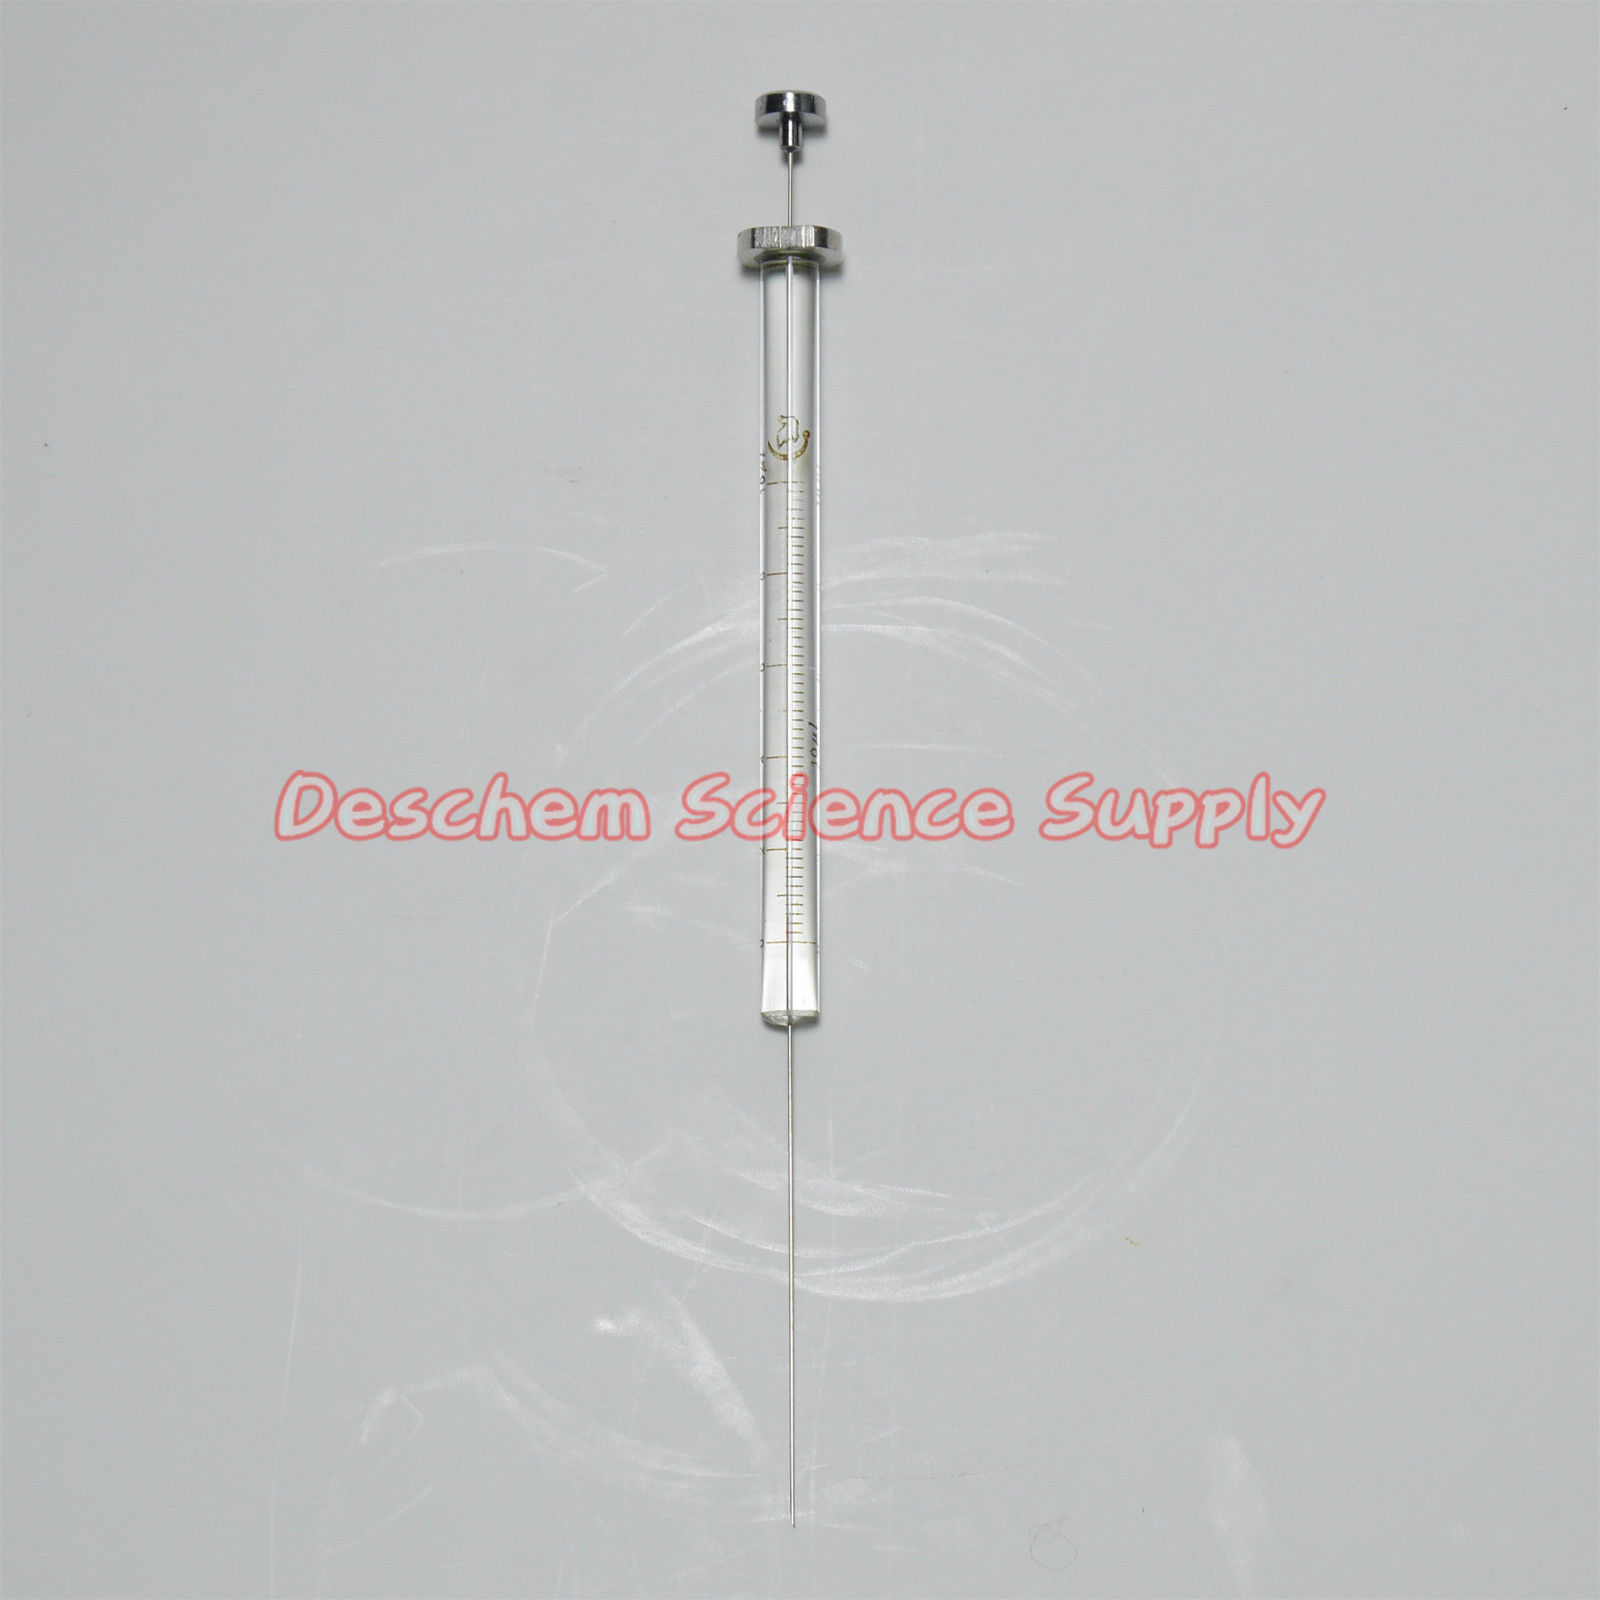 10ul Glass Micro Syringe 0 01ml Lab Trace Injector W Sharp Needle Tip In Pipette From Office